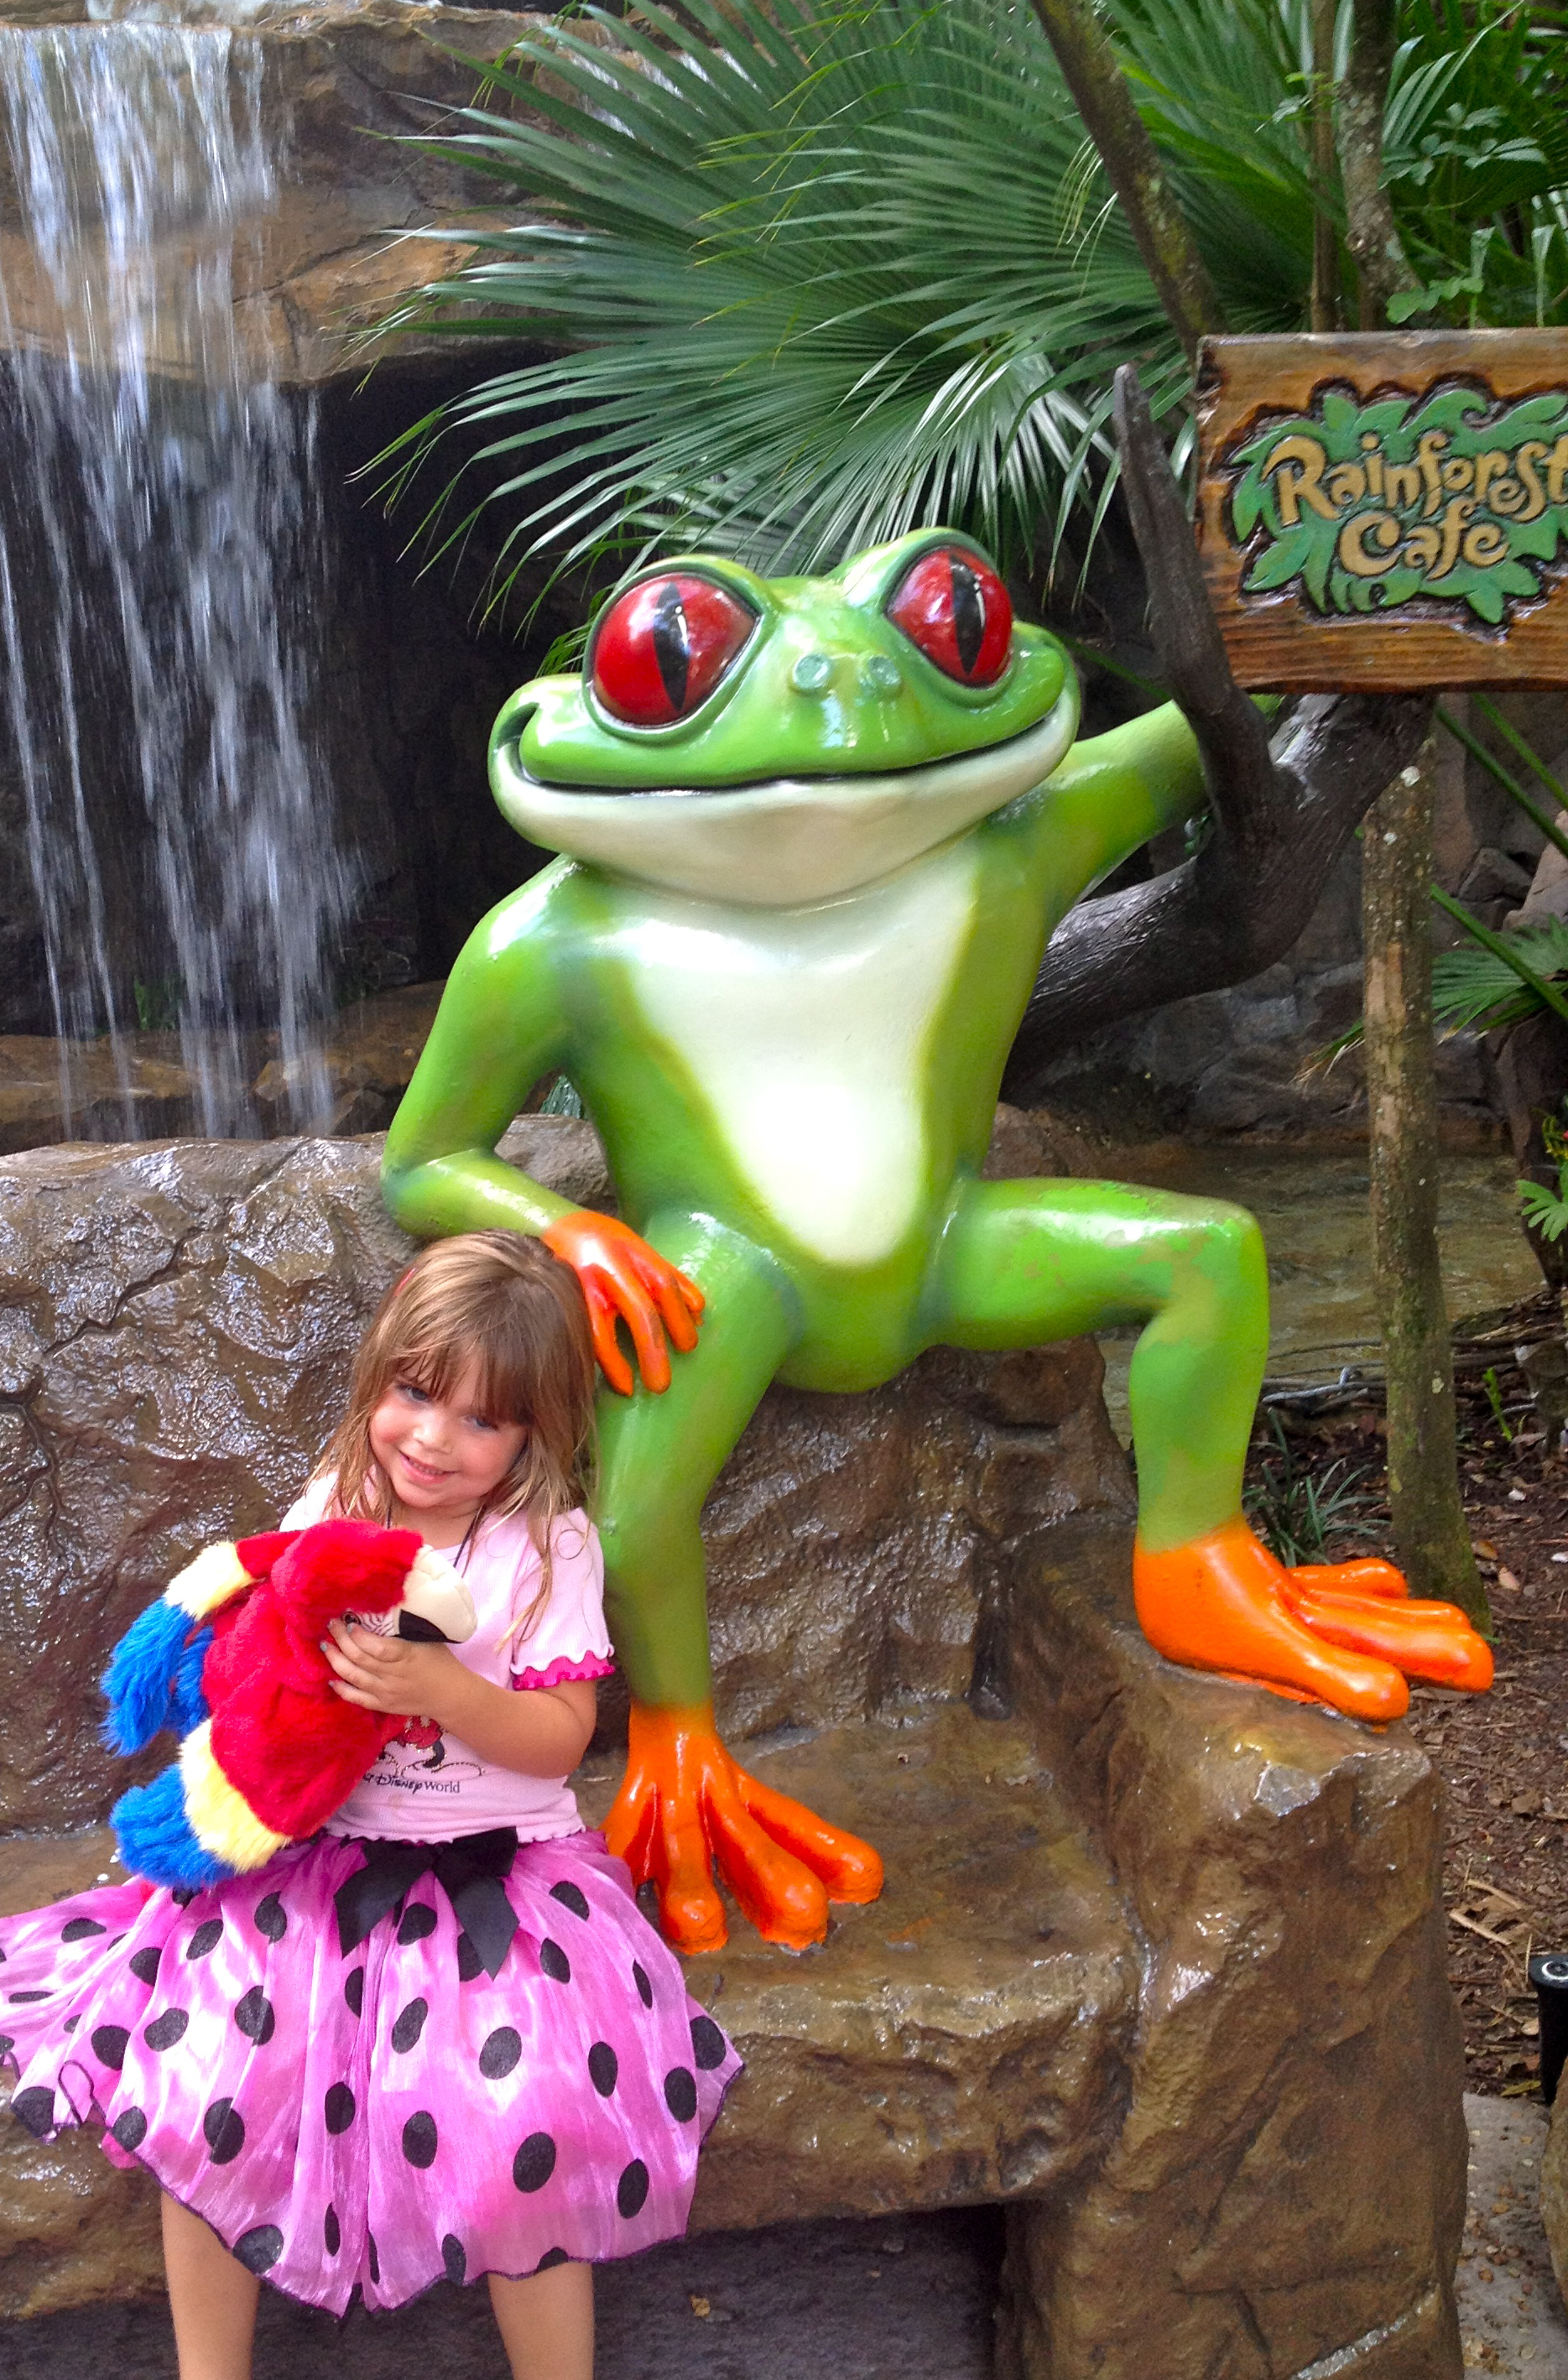 Restaurants Like Rainforest Cafe Near Me